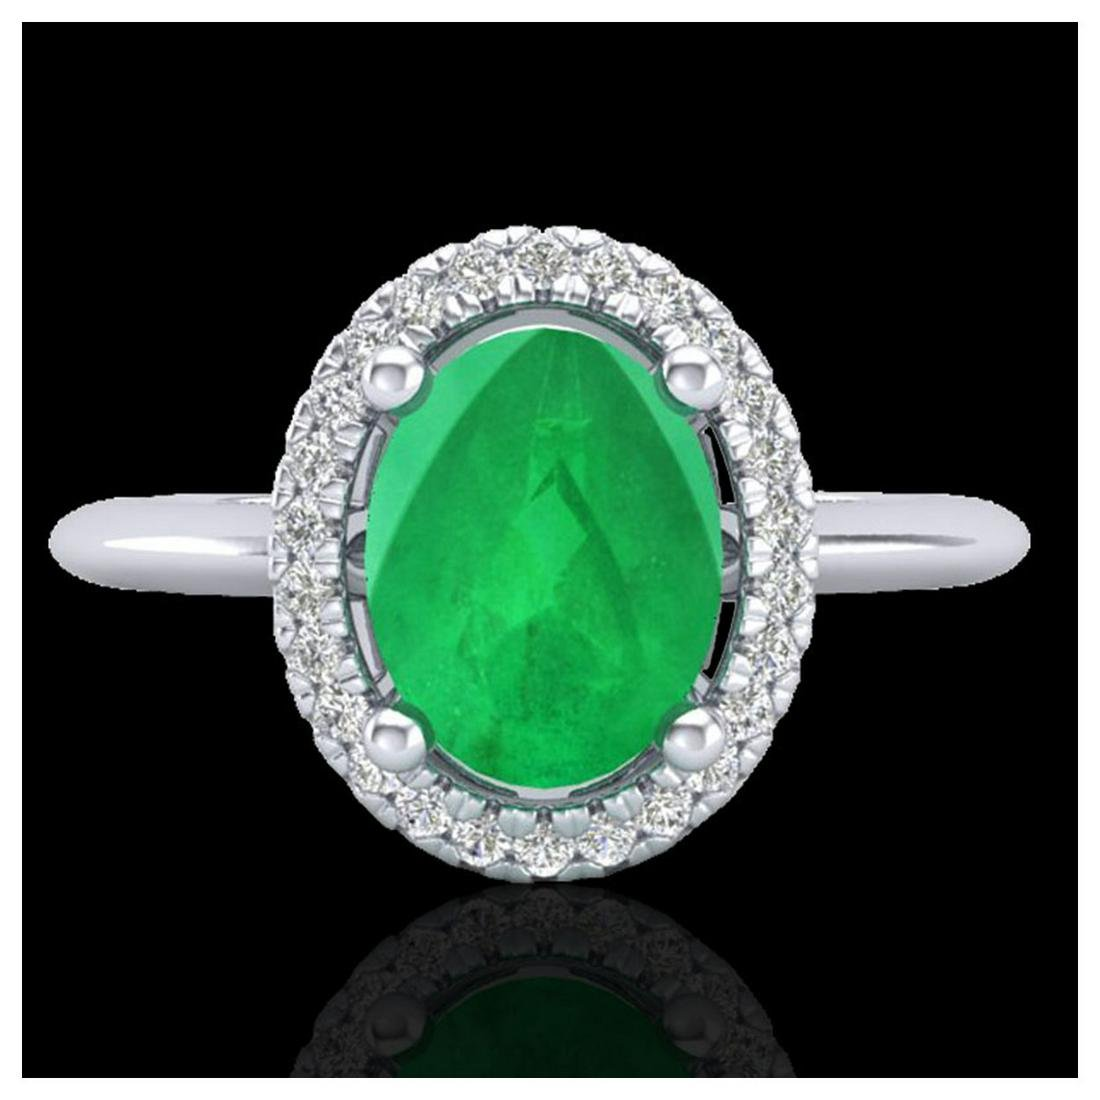 2 ctw Emerald & VS/SI Diamond Ring Halo 18K White Gold